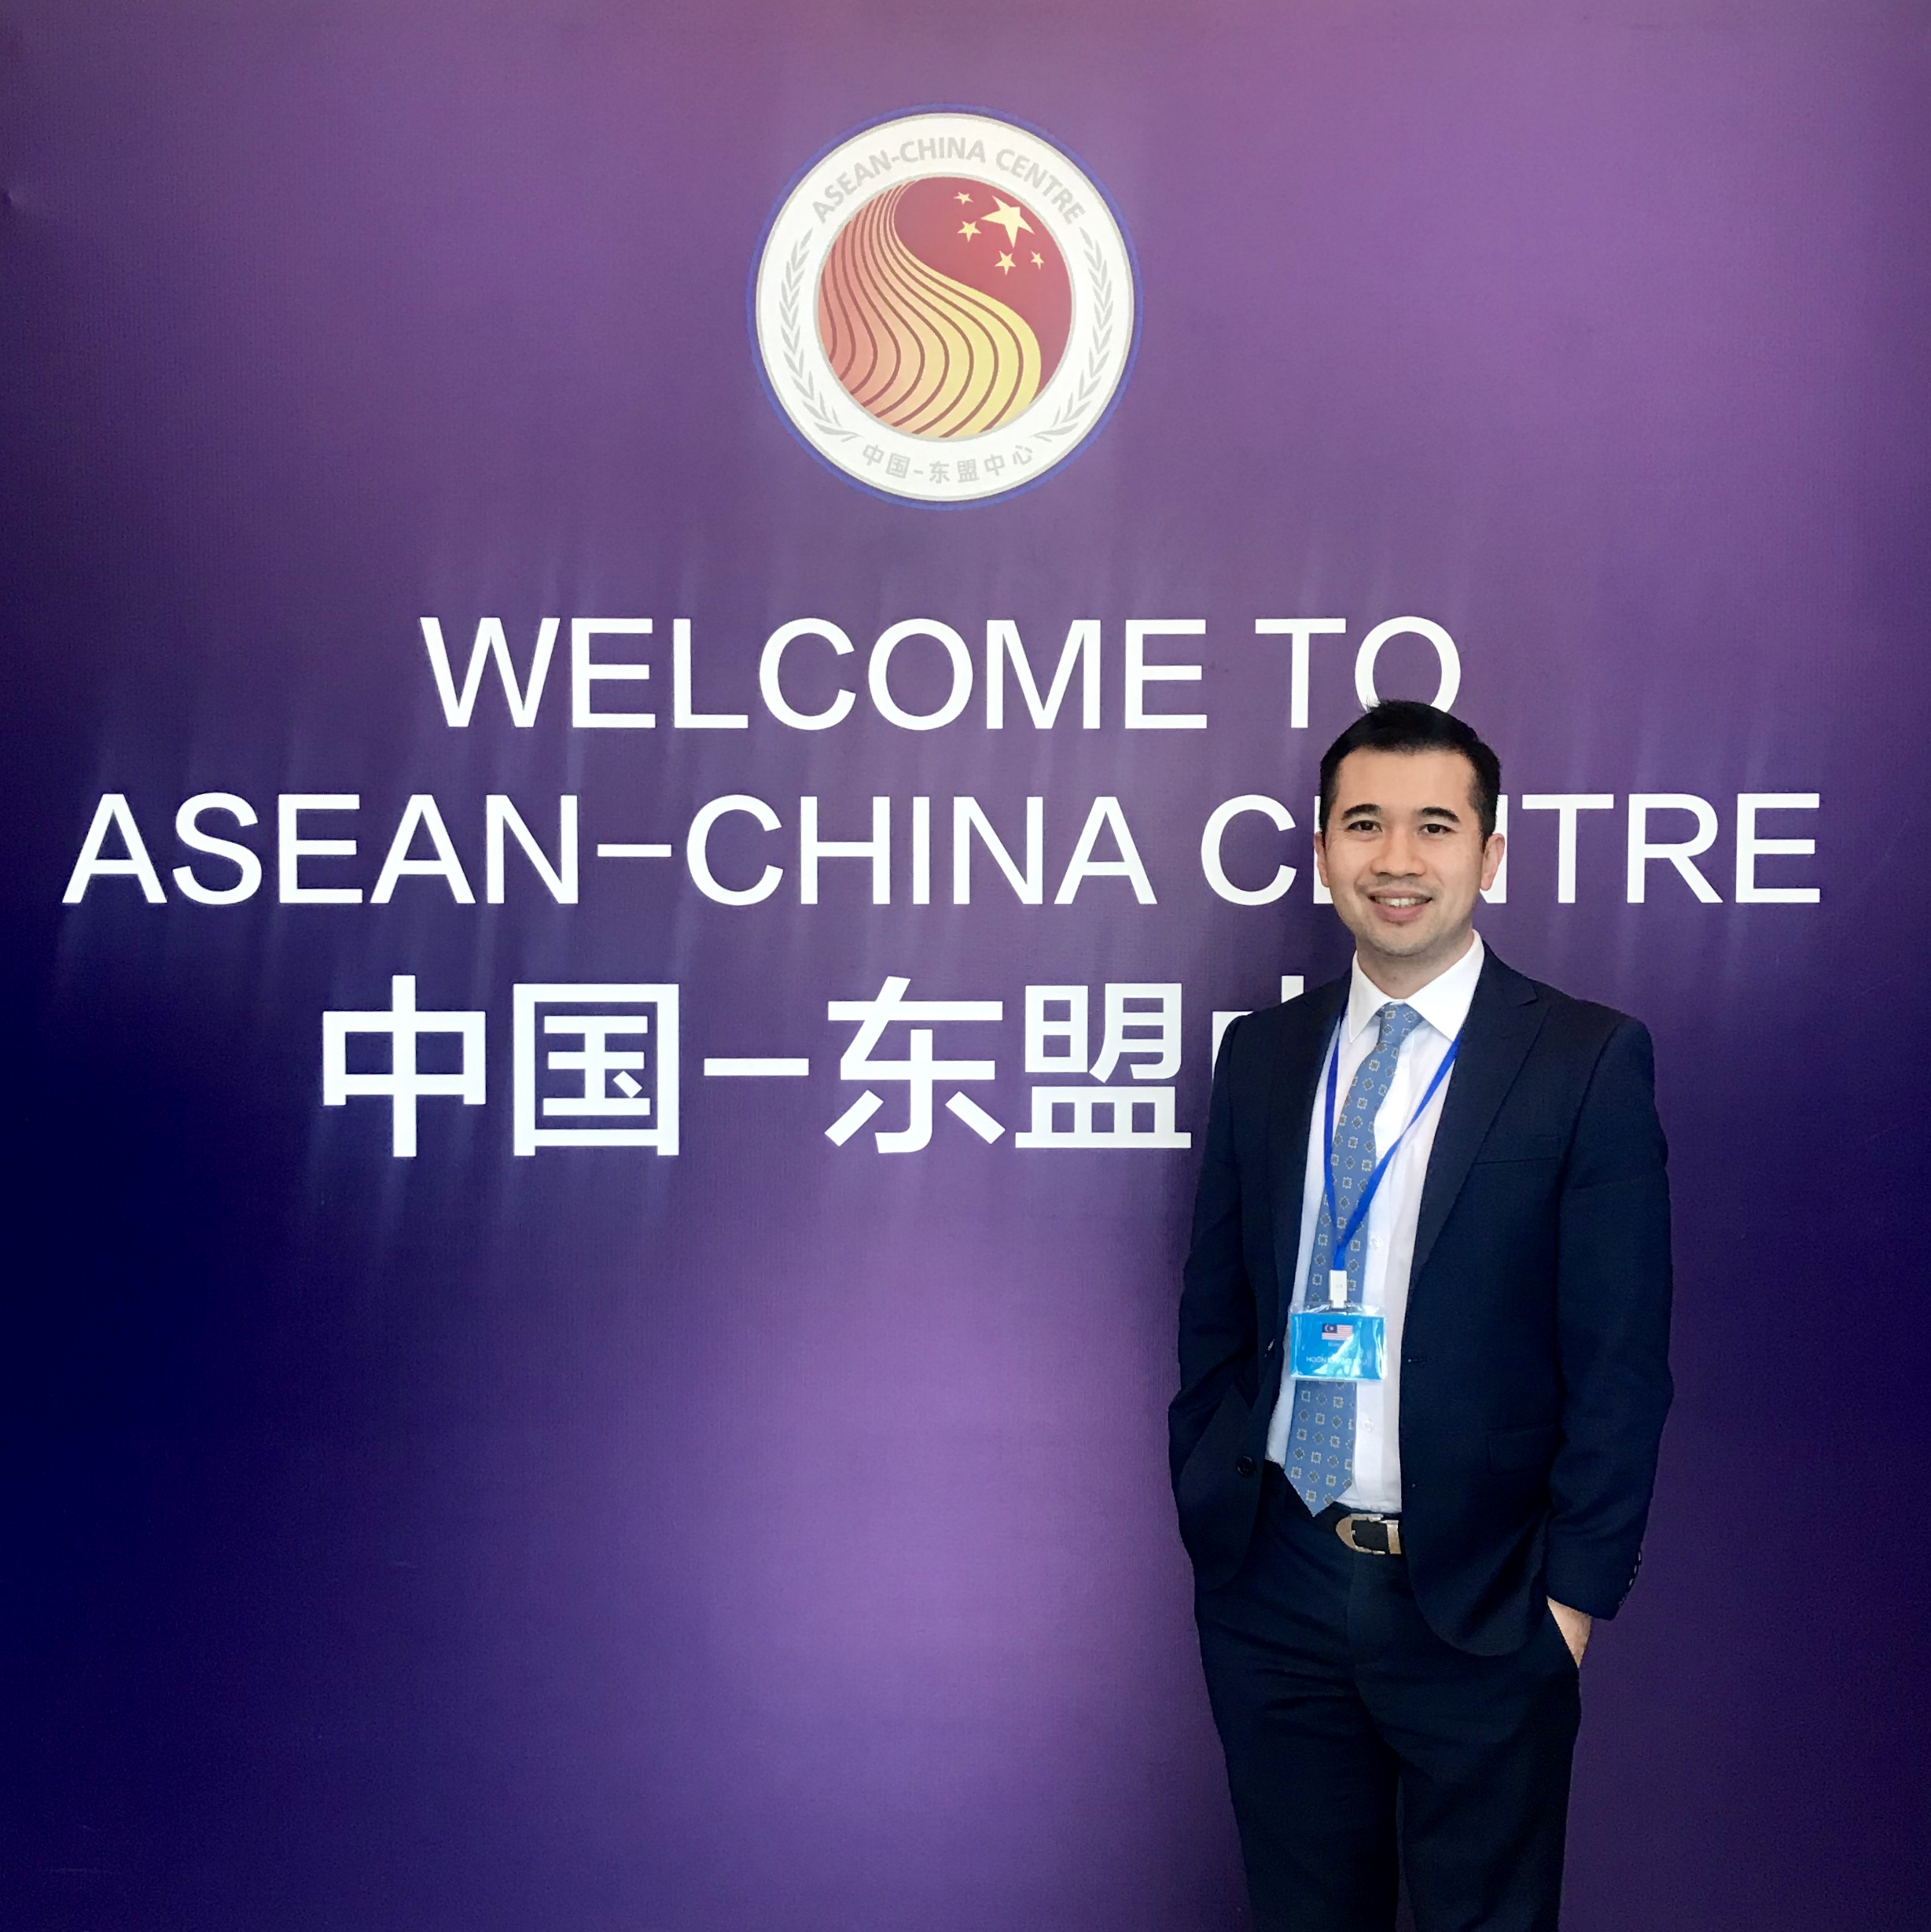 ASEAN-China Centre, Beijing